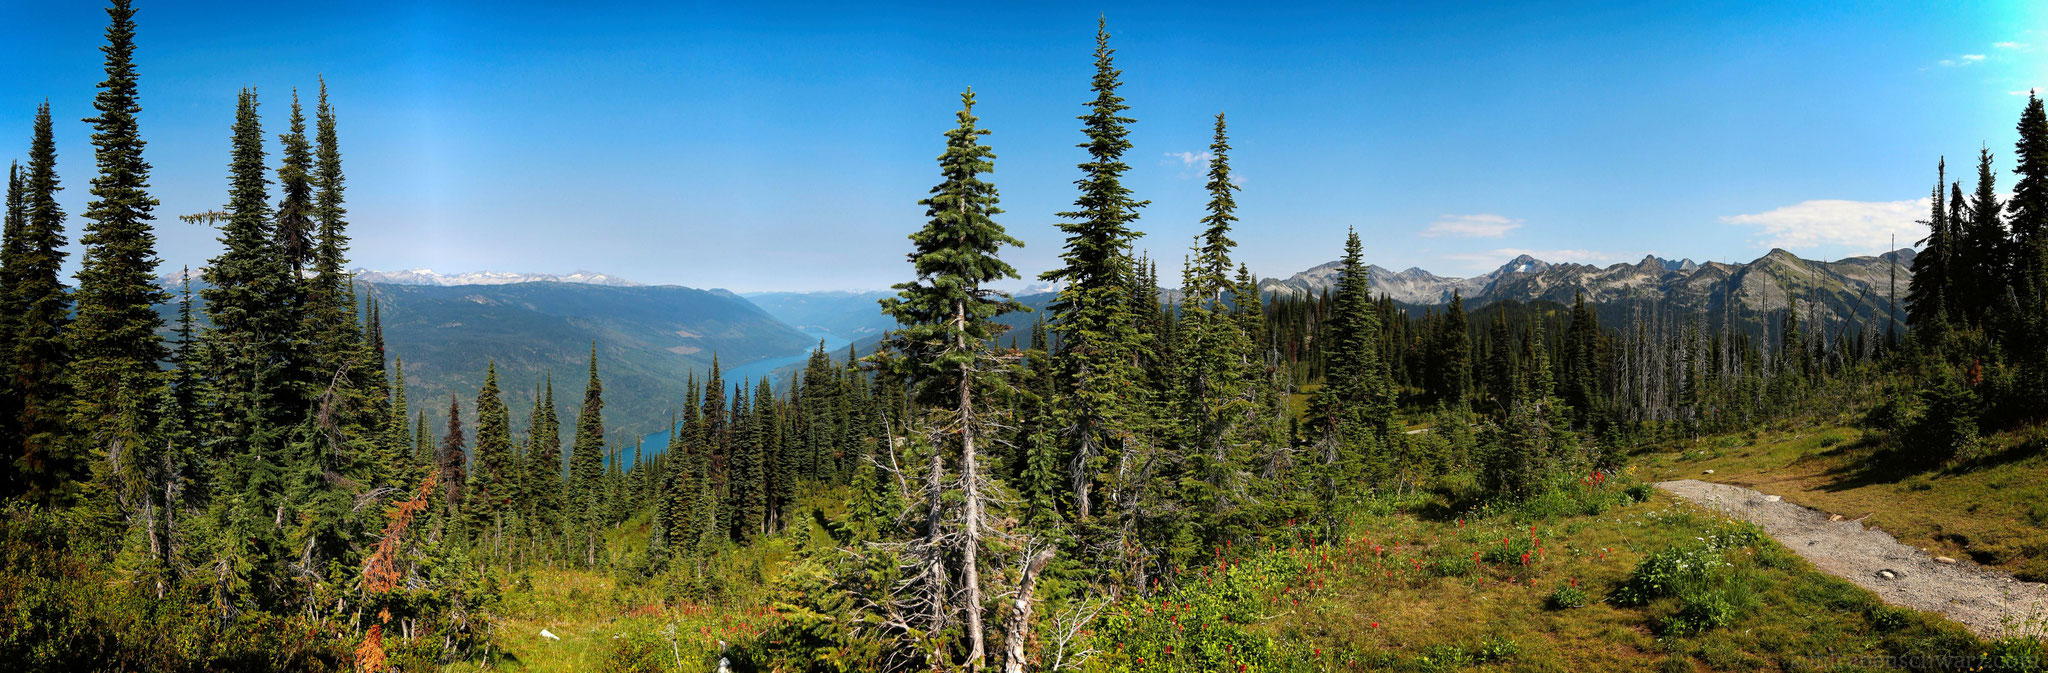 Mt. Revelstoke Nationalpark